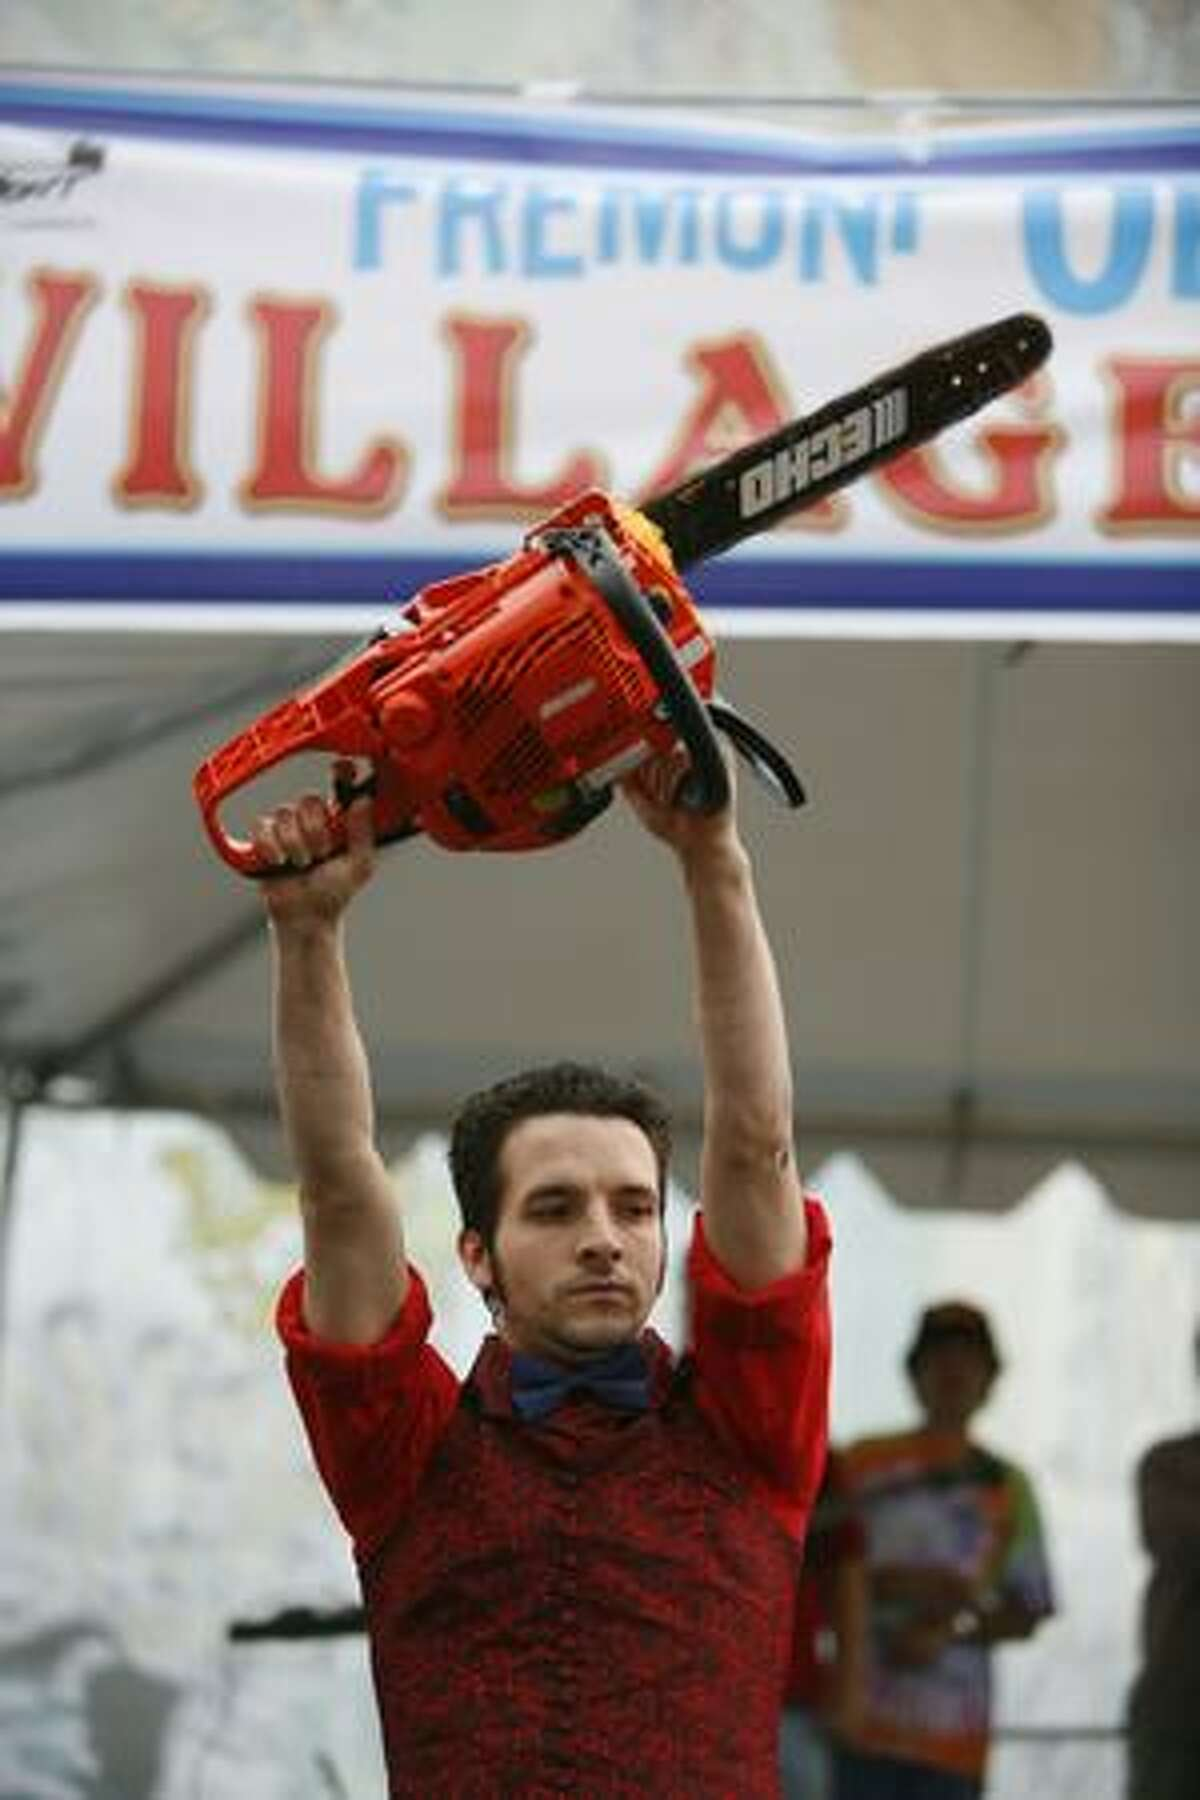 Ian Stone raises his chainsaw during the Texas Chainsaw Carvin' competition during Fremont's Oktoberfest celebration on September 19, 2009 in Fremont.